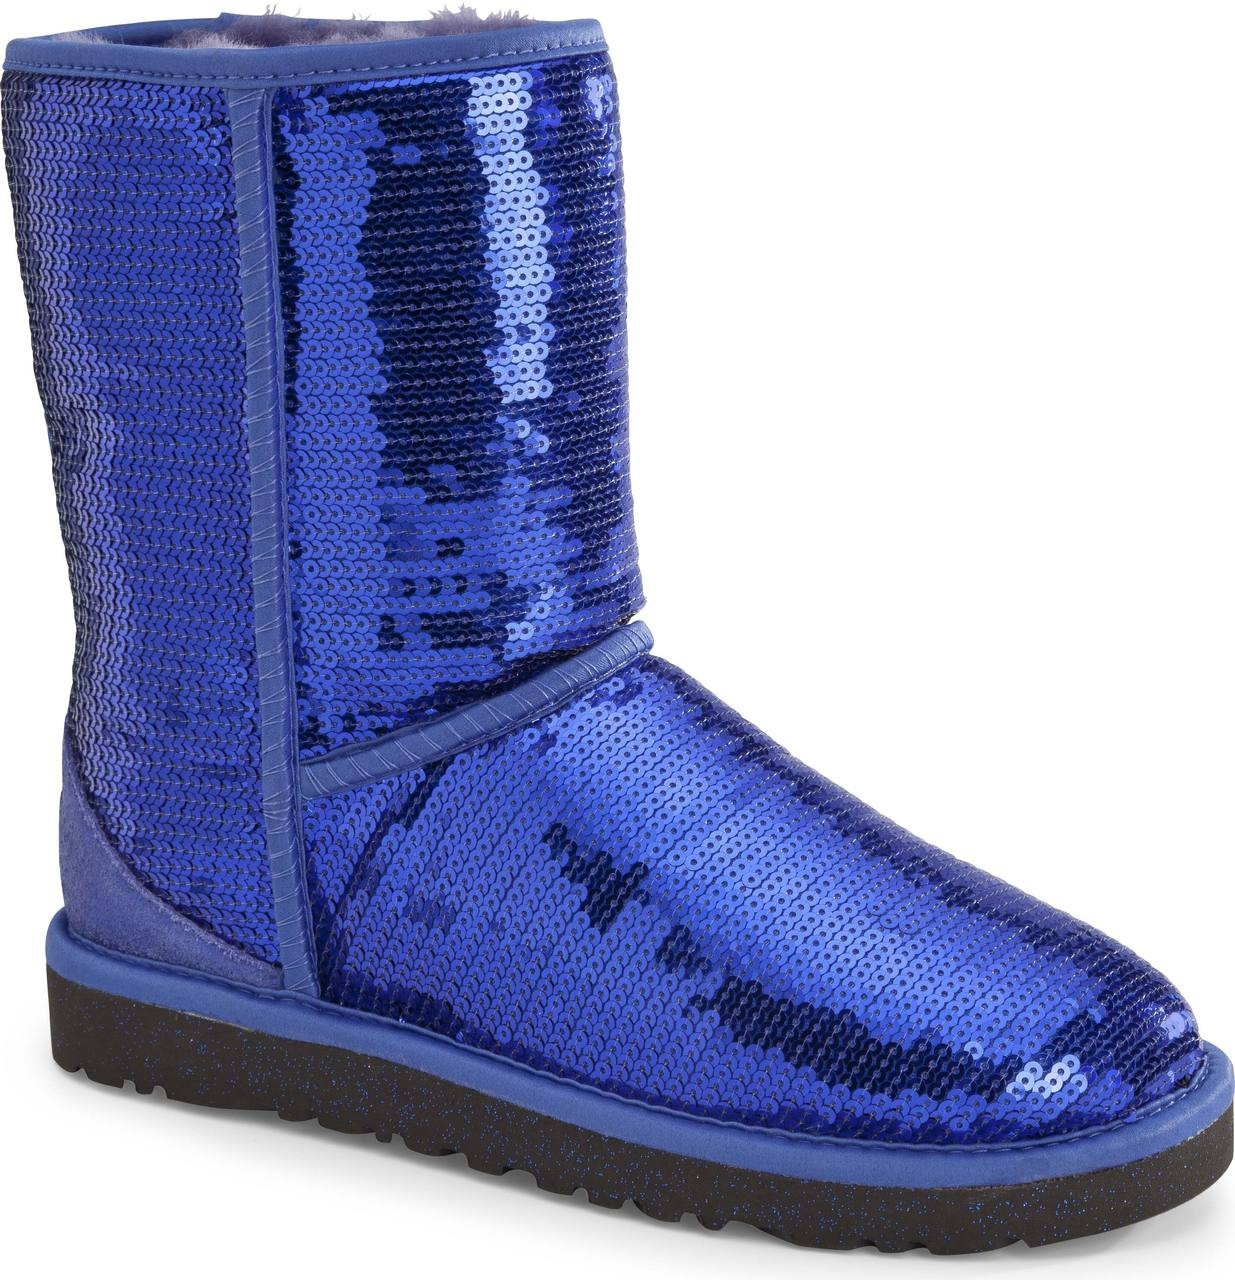 Electric Blue Boots